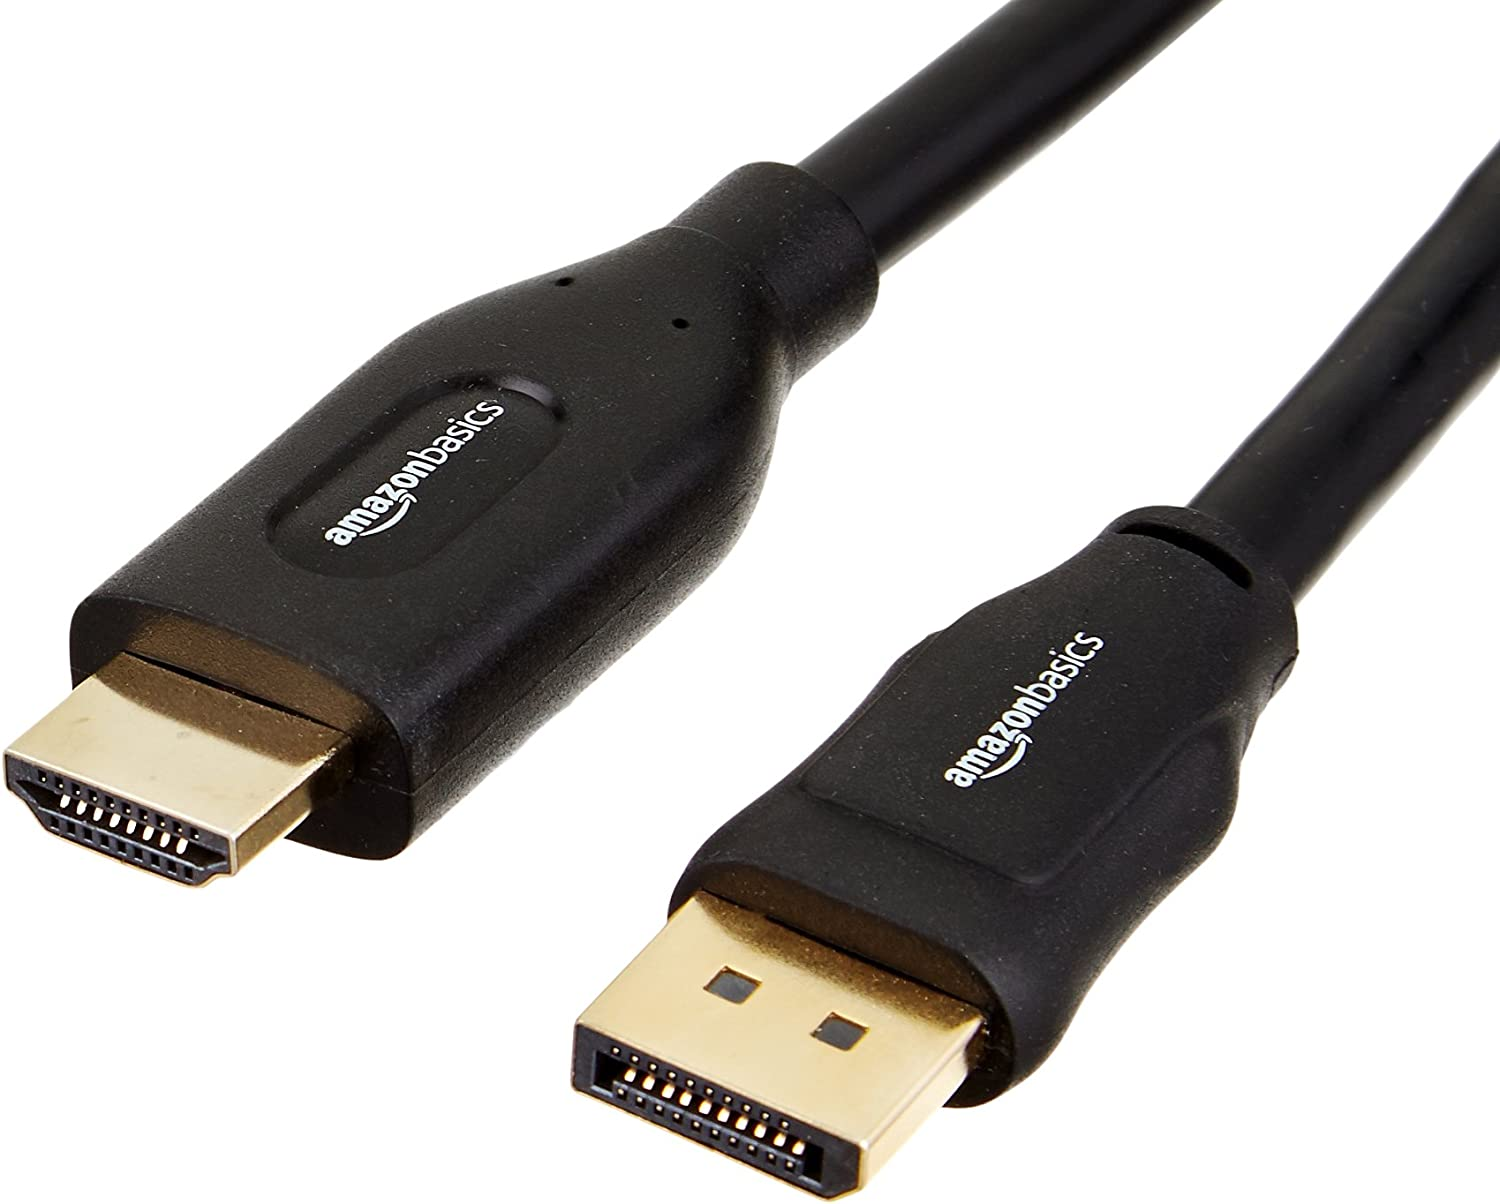 AmazonBasics DisplayPort to HDMI Display Adapter Cable - 25 Feet, 5-Pack